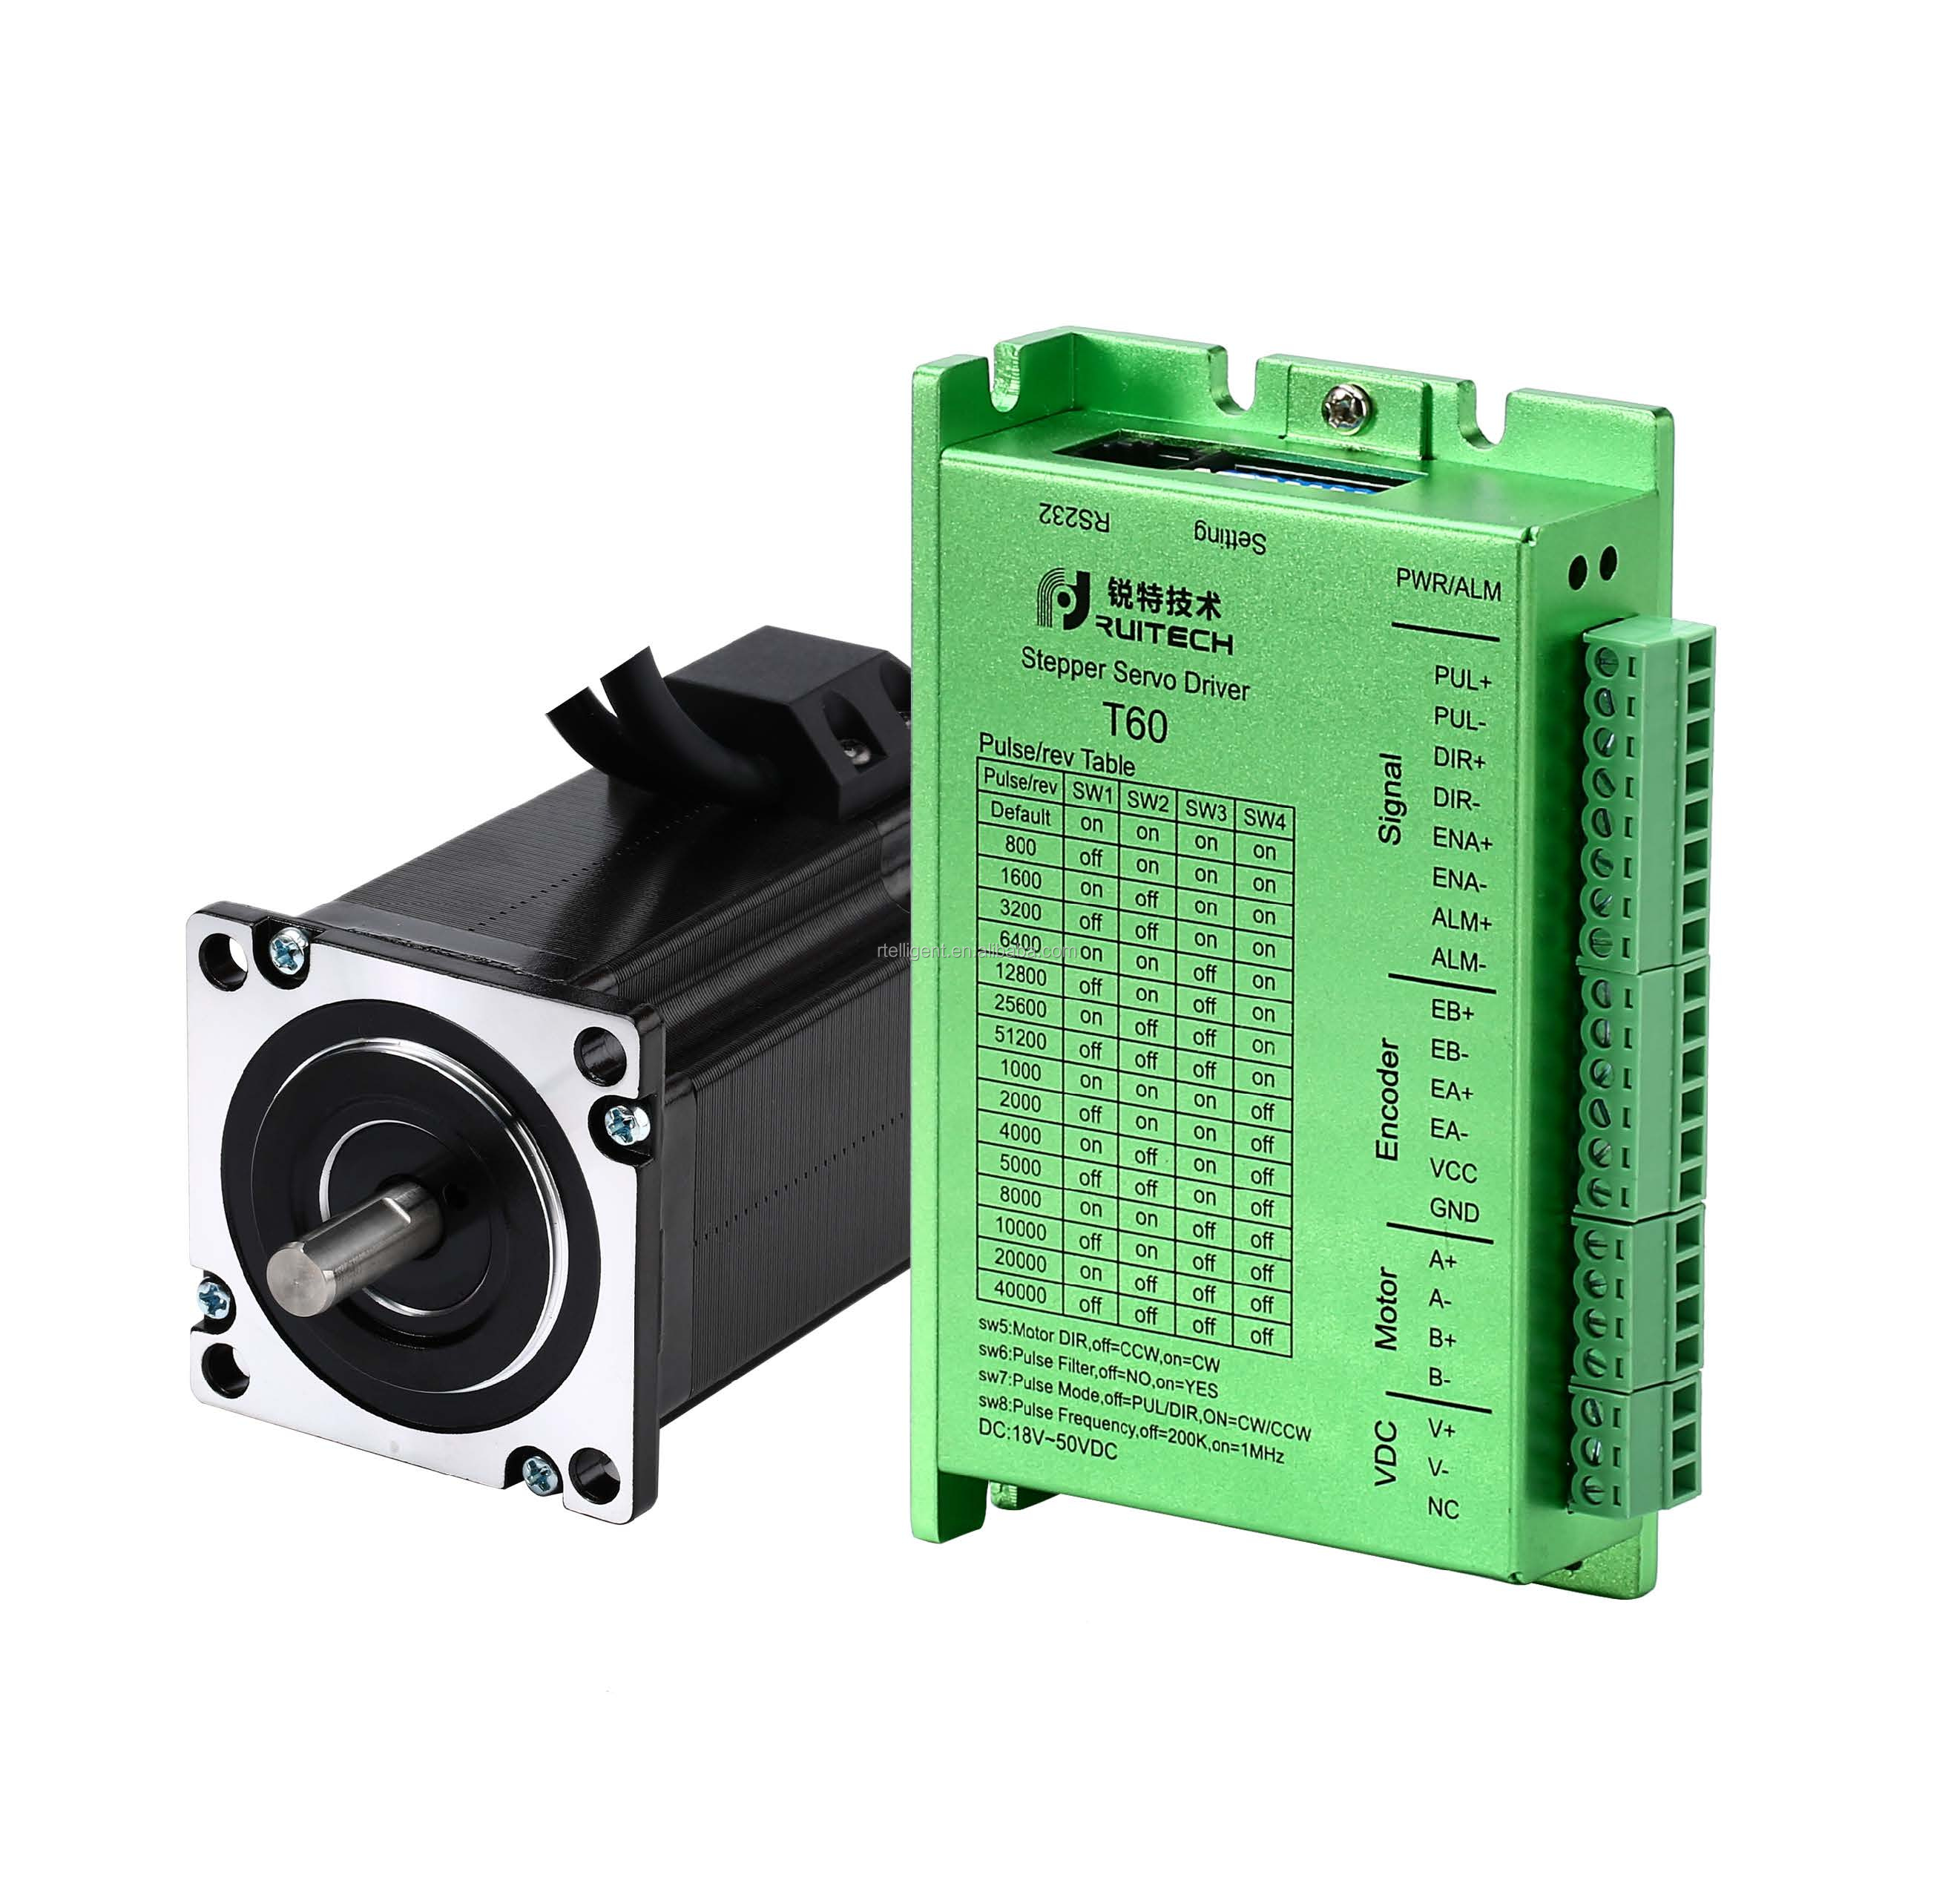 60A3EC + T60 closed loop servo stepper motor with encoder,  60mm motor 5.0 A cnc  nema 24 nema 23 step motor kit